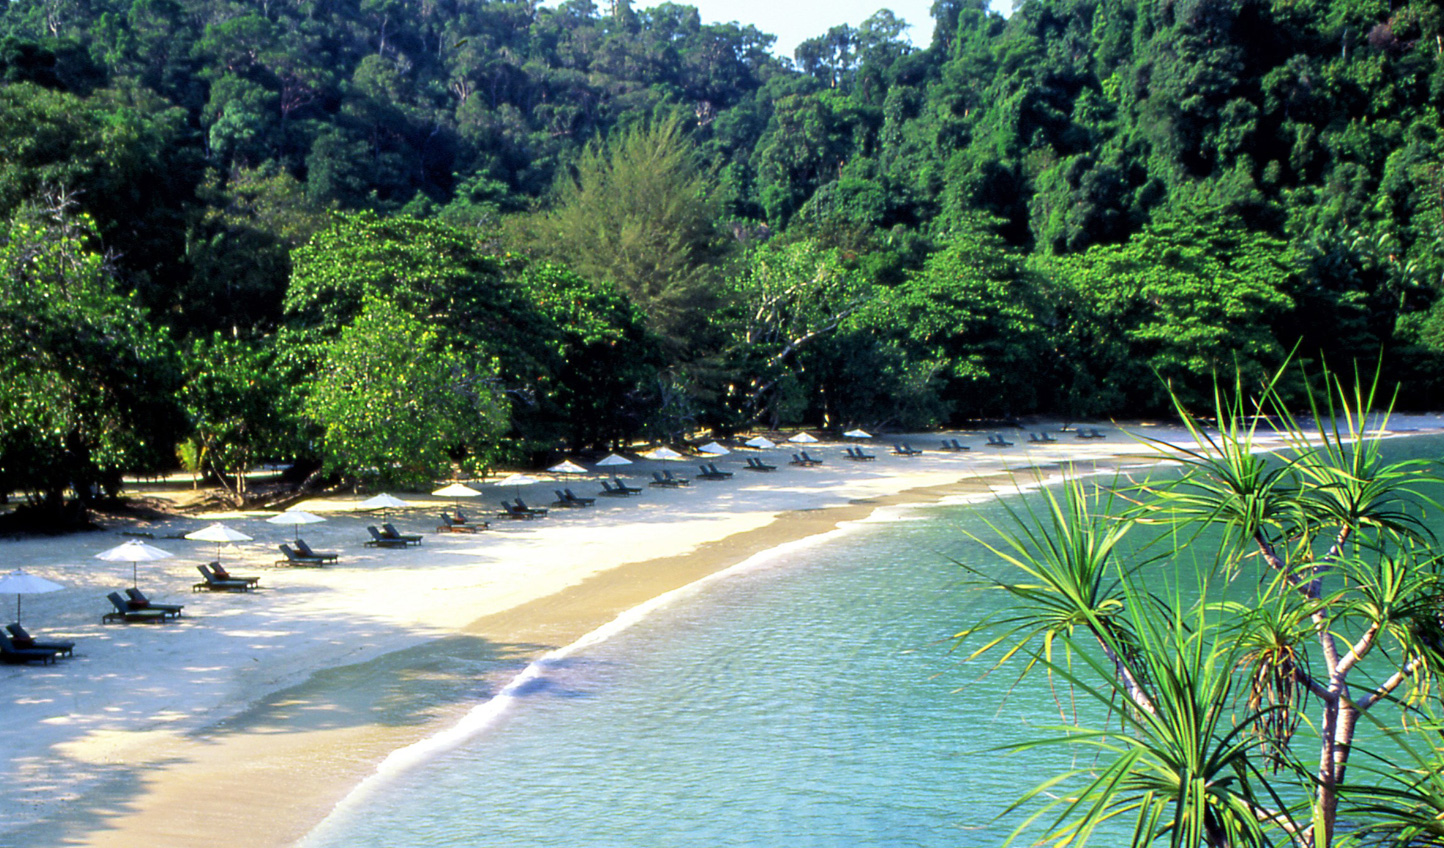 Relax on the pristine beaches of Pangkor Laut